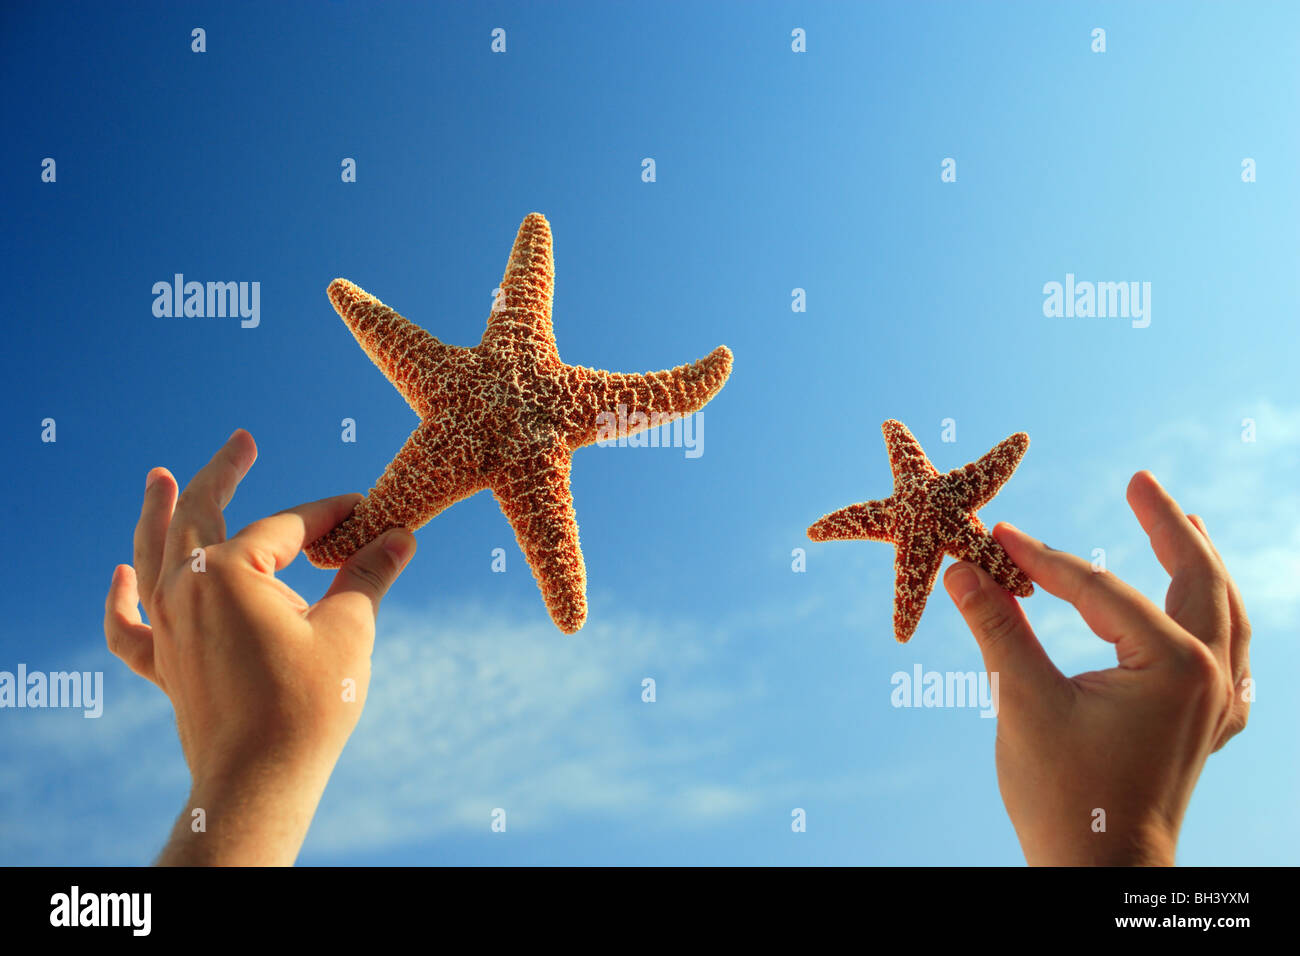 A man's hands holding one small and one large starfish in the air against a blue summer sky - Stock Image